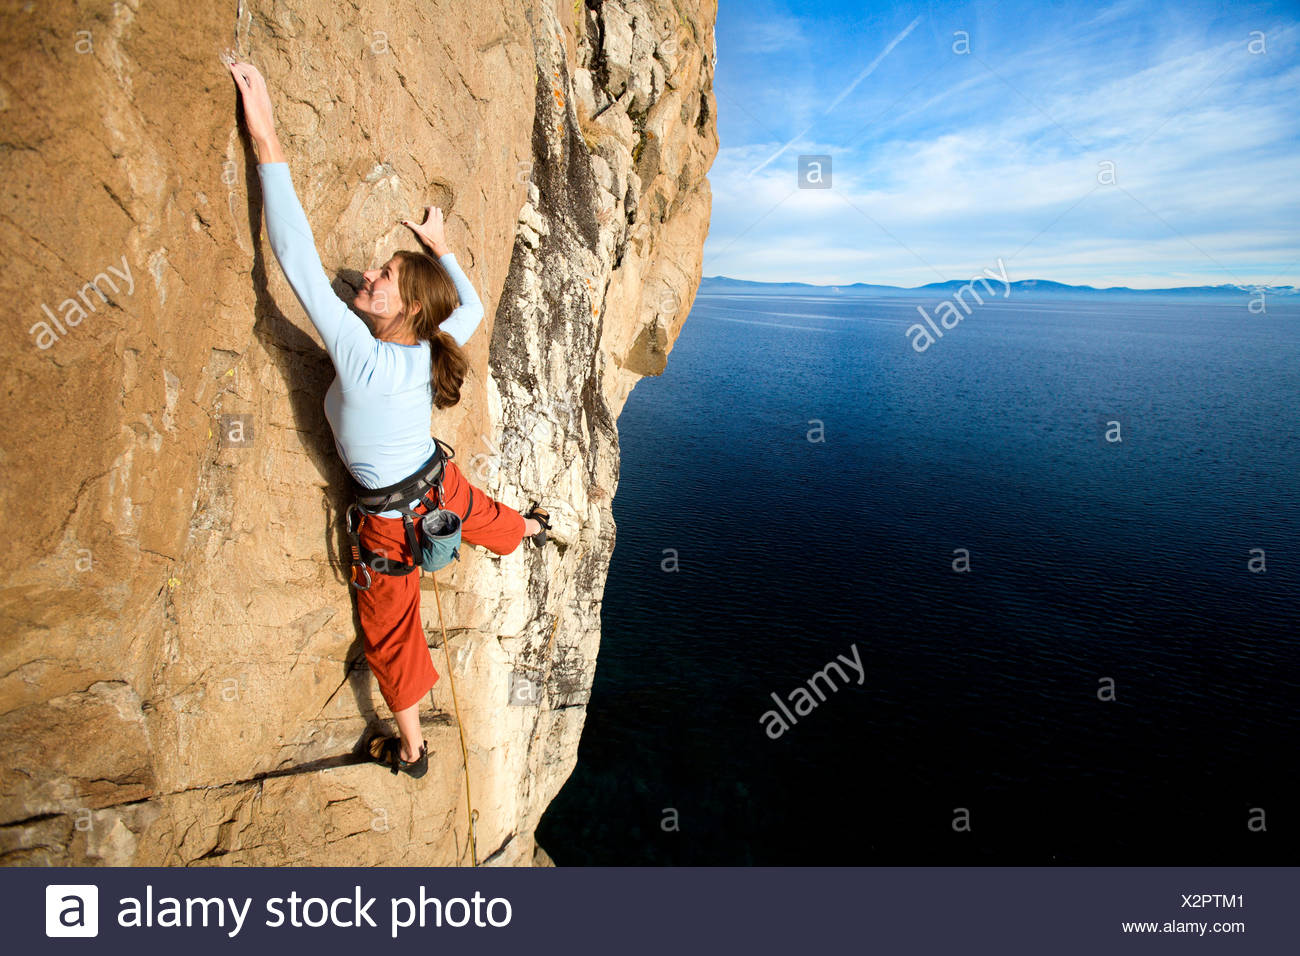 Climber grabs a hold while climbing. - Stock Image